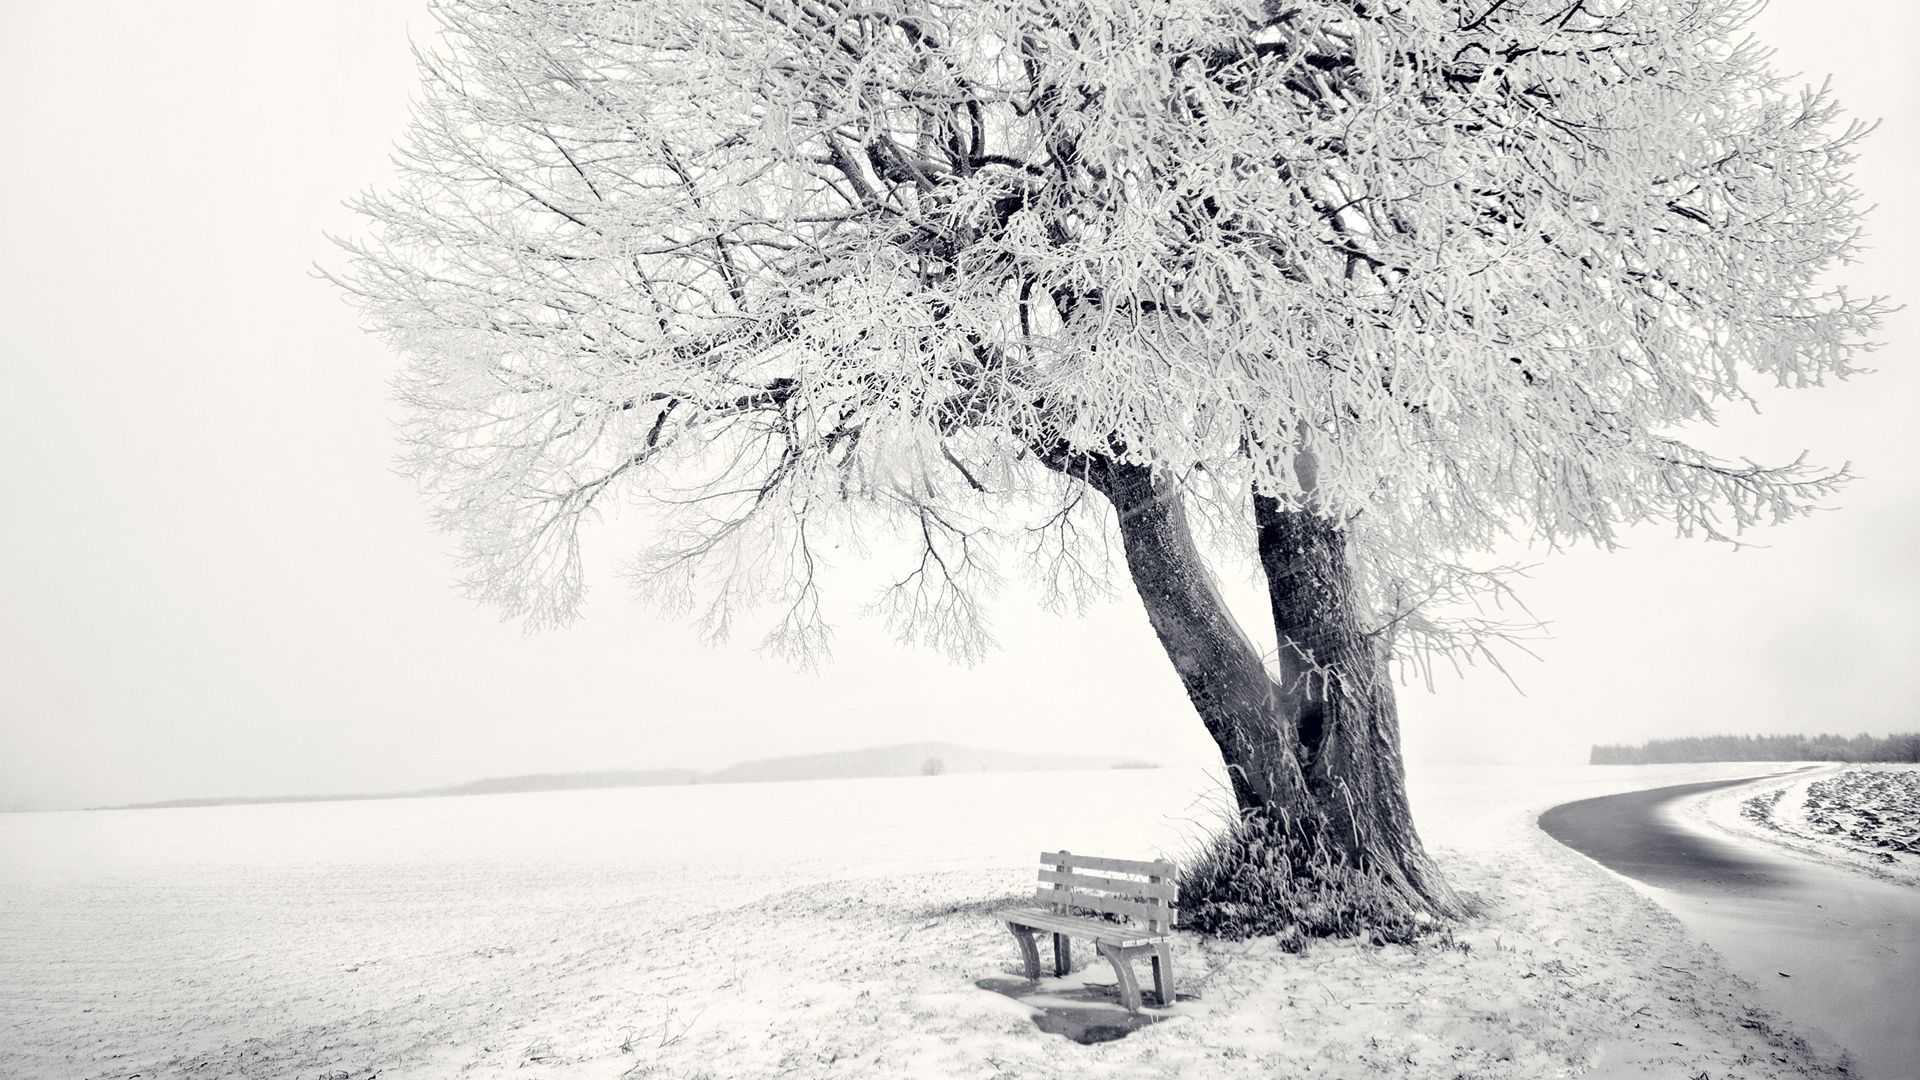 Black And White Photo Of Snow On Trees